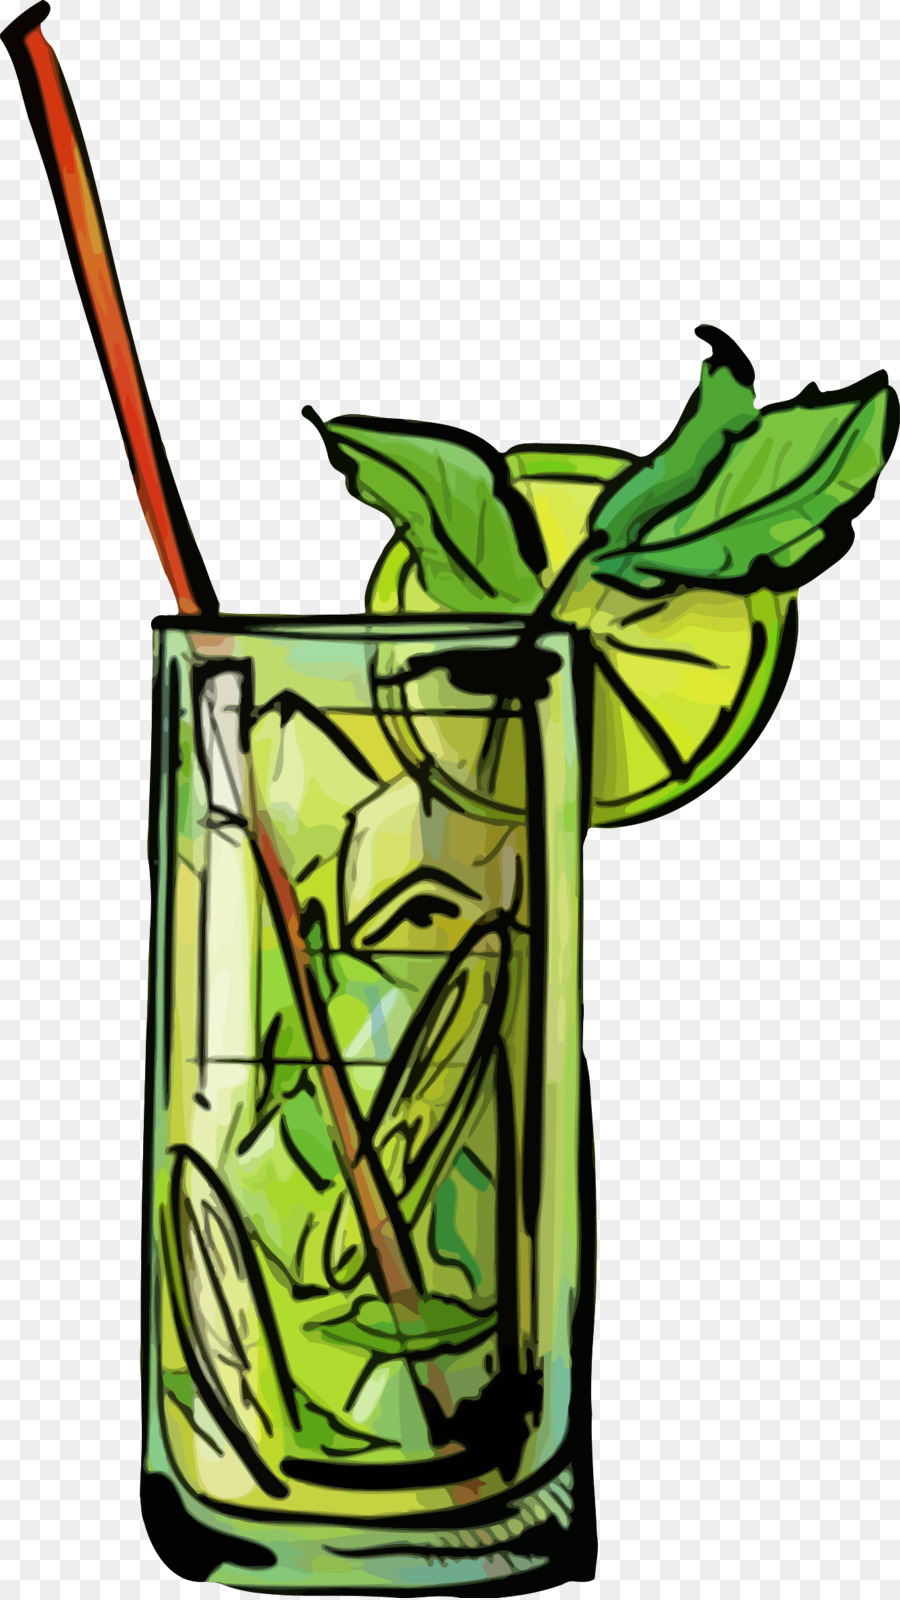 Flower stem drink plant. Cocktail clipart mojito